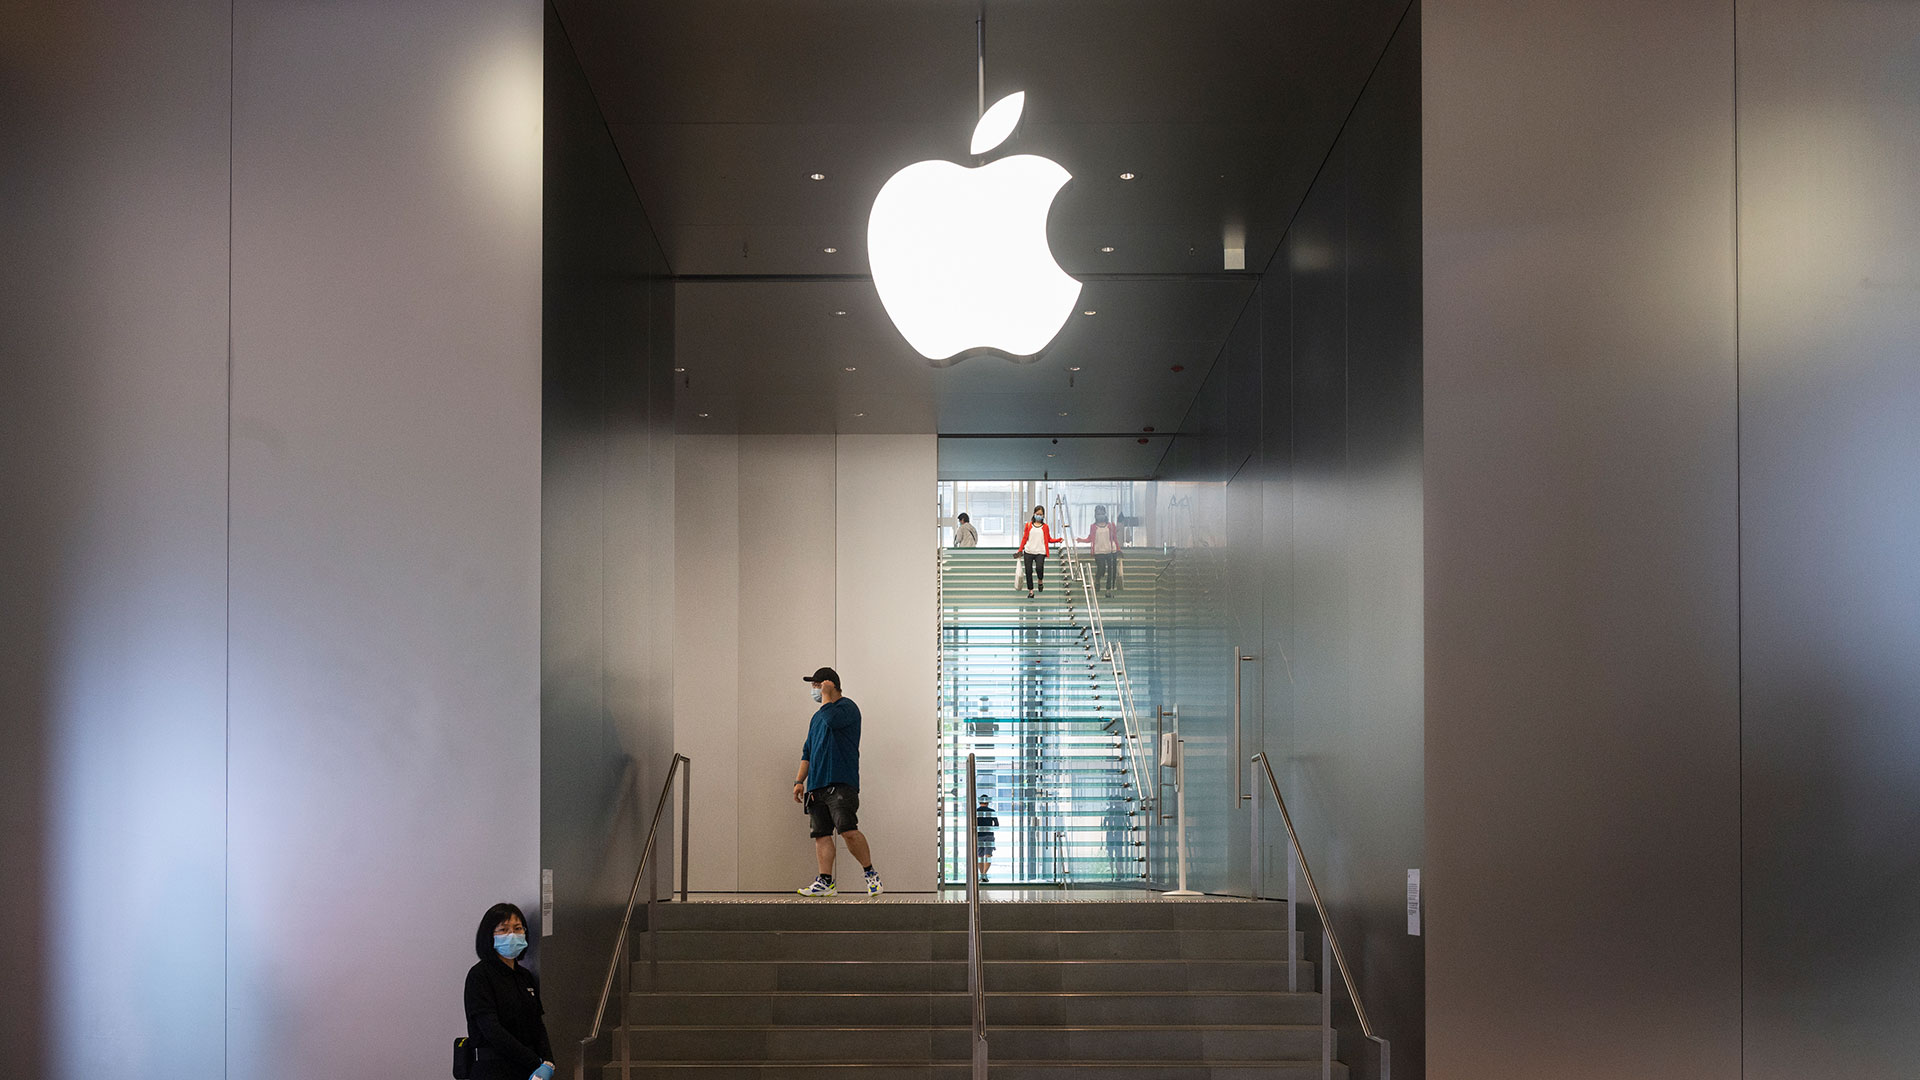 """Apple: Kommt jetzt """"The Next Big Thing""""?"""